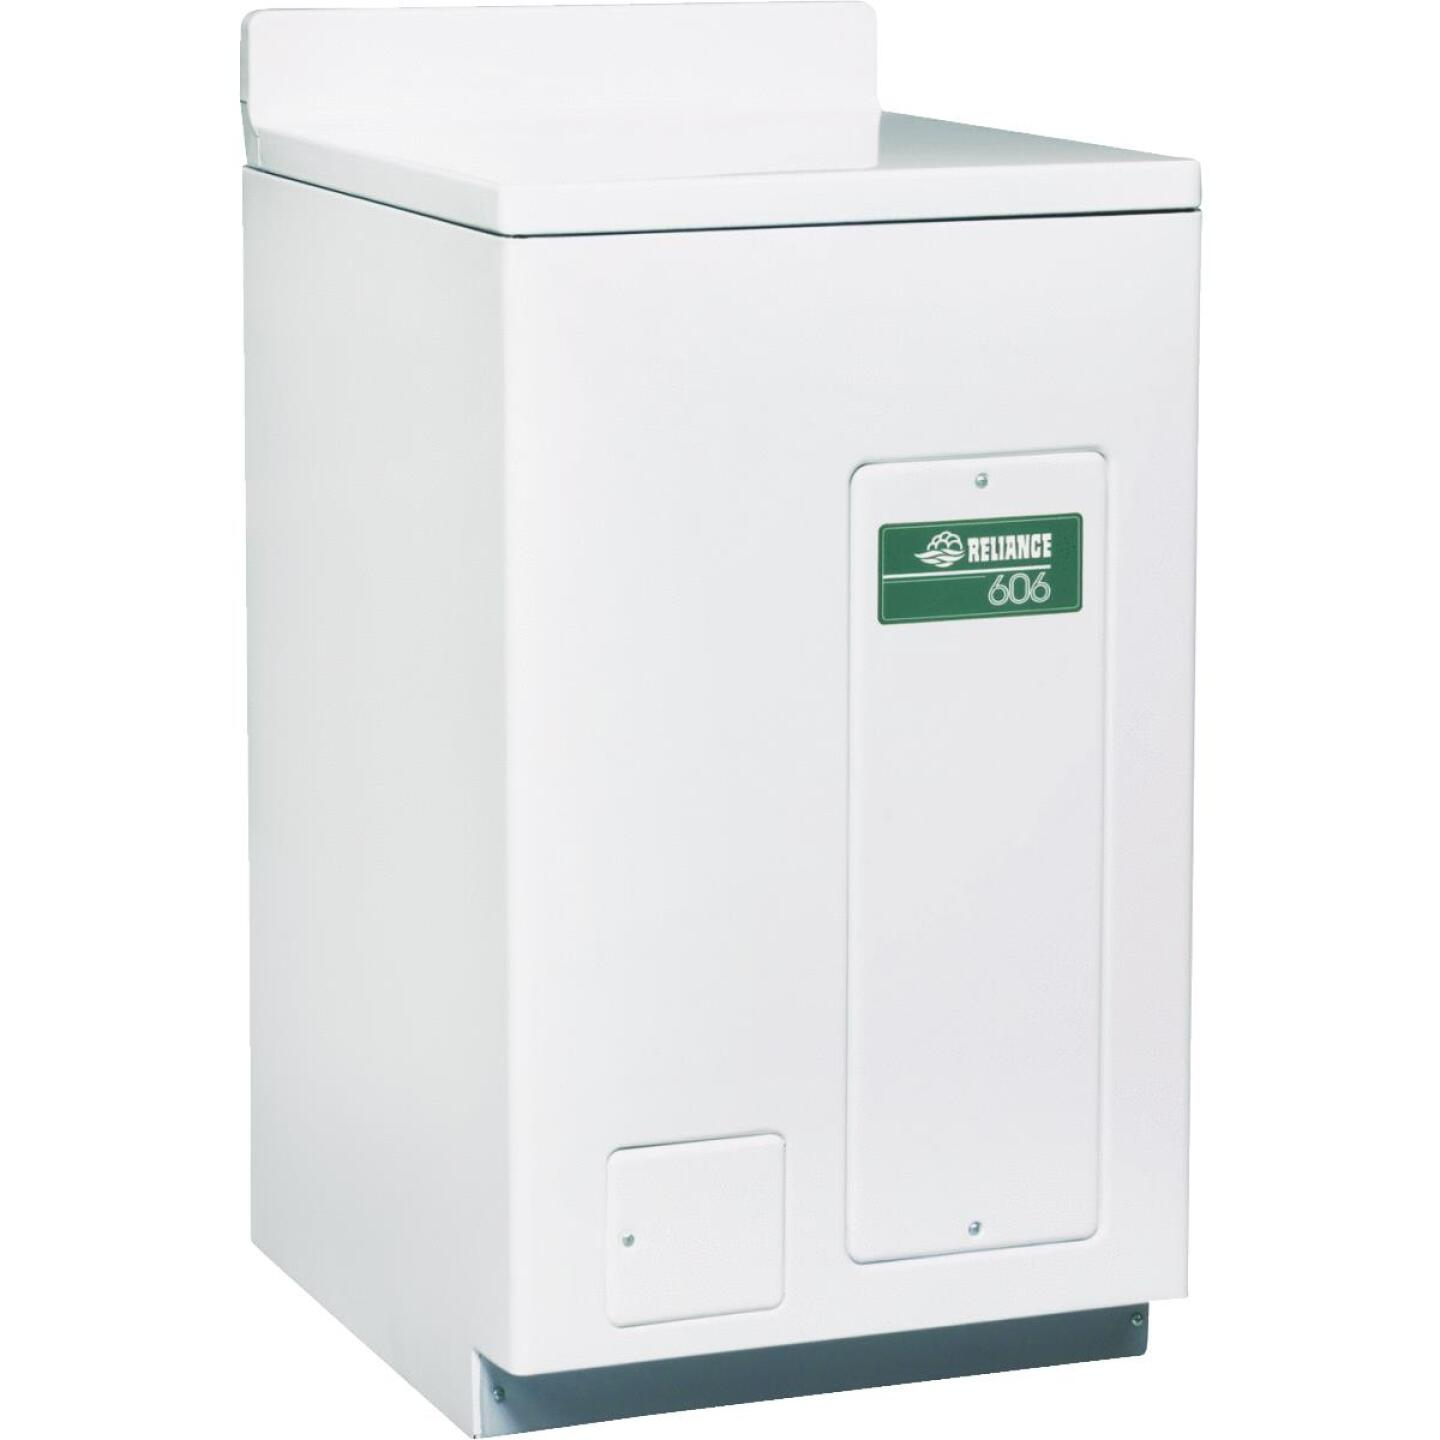 Reliance 38 Gal. Table Top 6yr 4500W Element Electric Water Heater Image 2